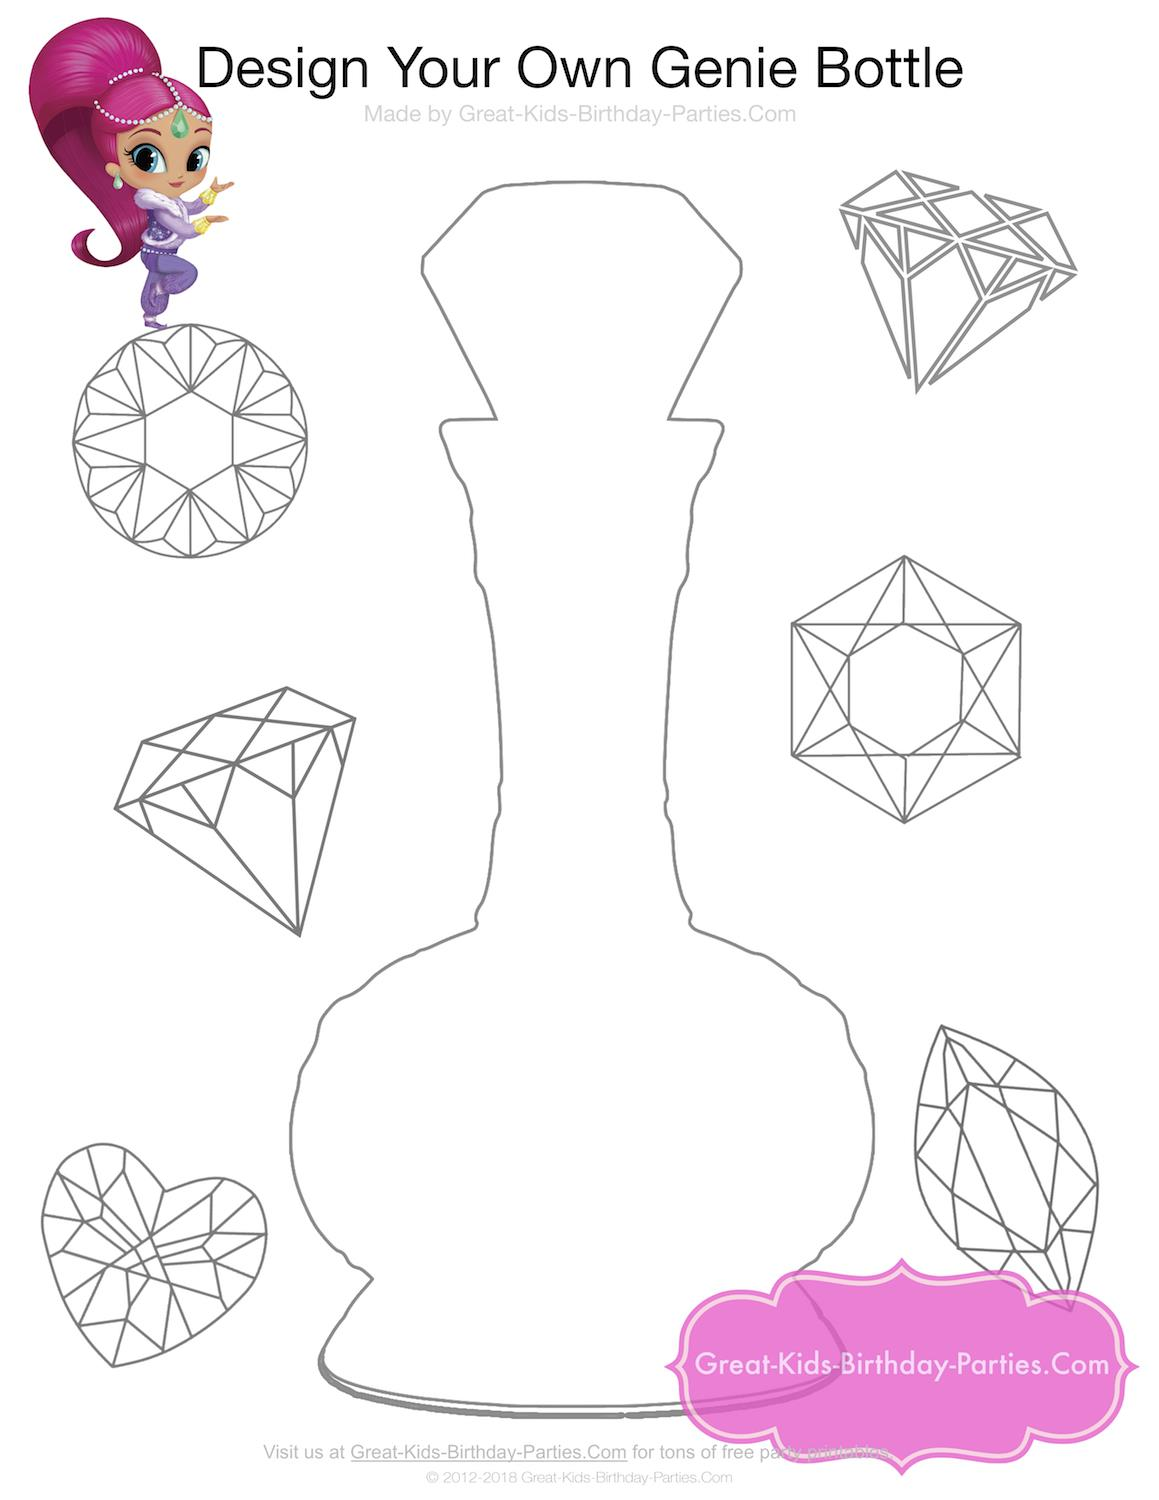 great kids birthday parties ; genie-bottle-coloring-page